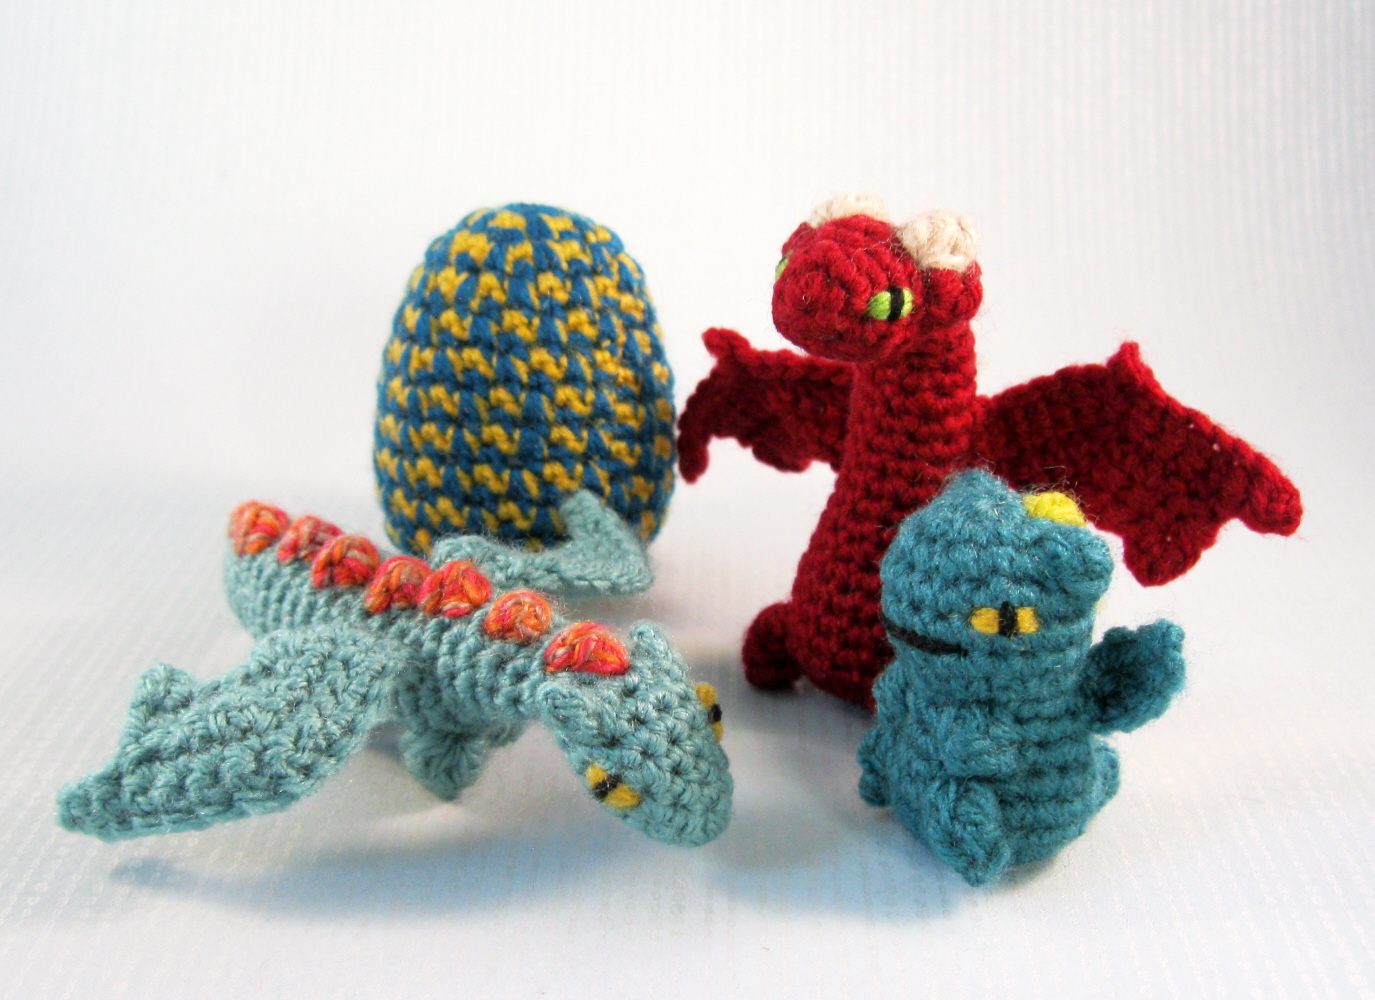 Free Easter Crochet Patterns The Best Collection | The WHOot | 1000x1375